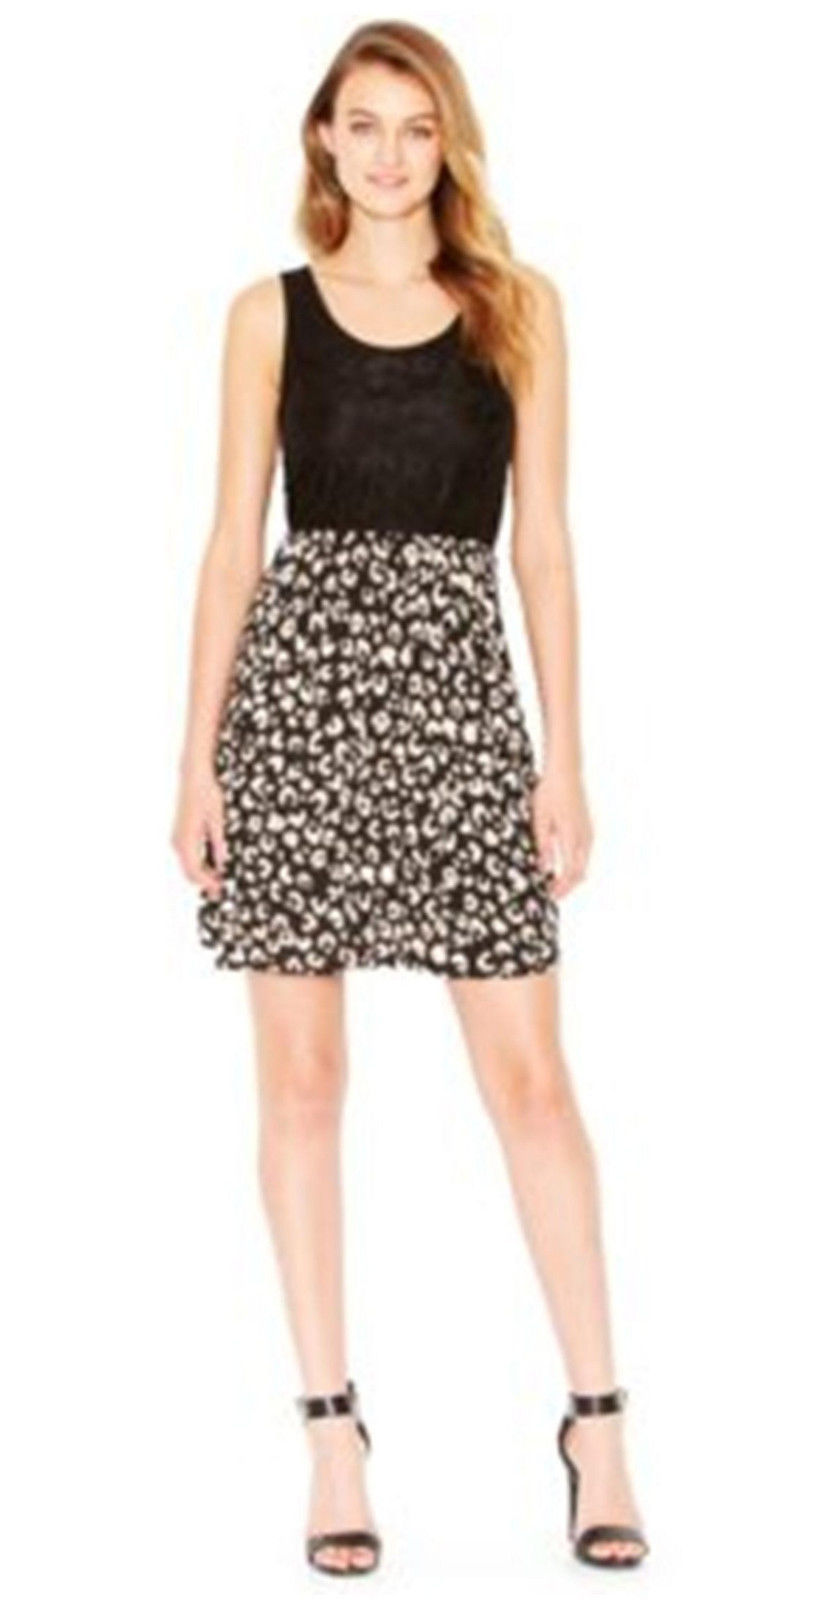 Primary image for Kensie Black Contrast Lace Top Cheetah Print Skirt Sleeveless Dress S